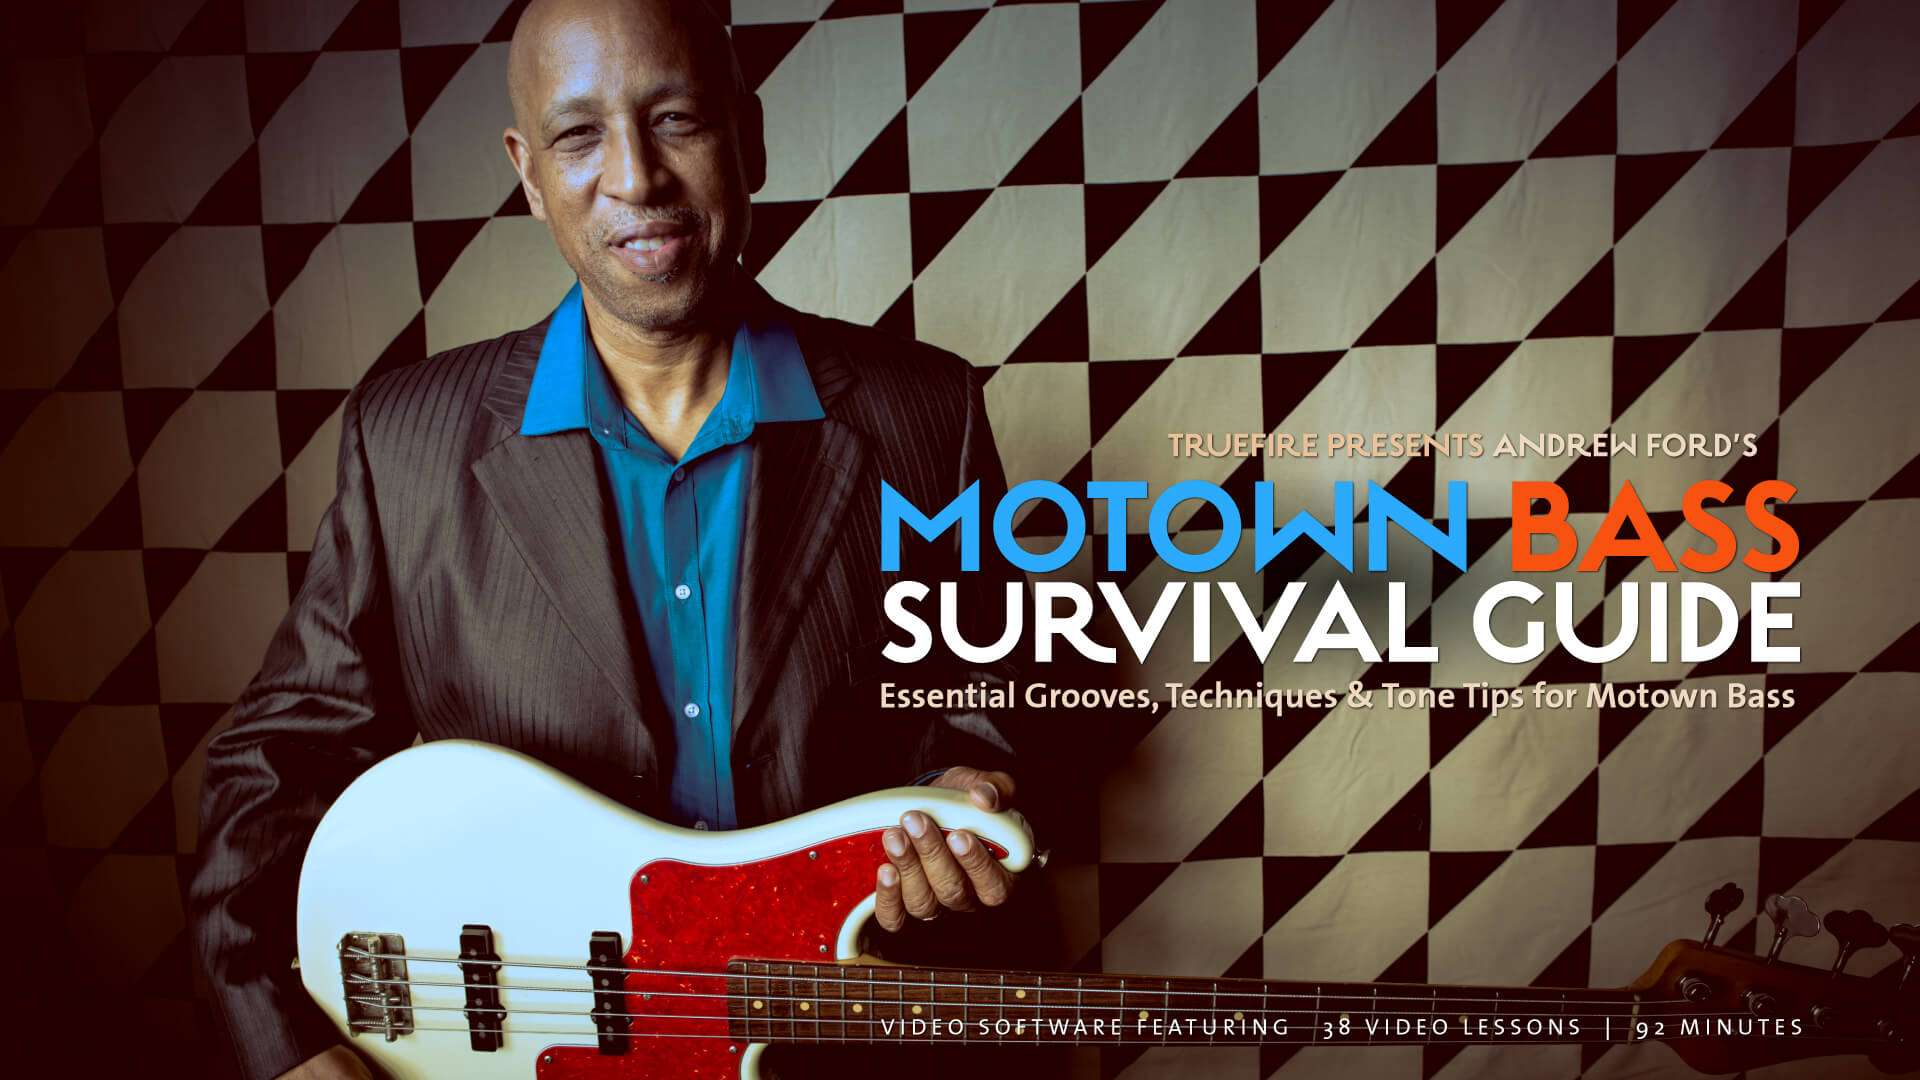 Motown Bass Guitar Lessons - Andrew Ford - TrueFire